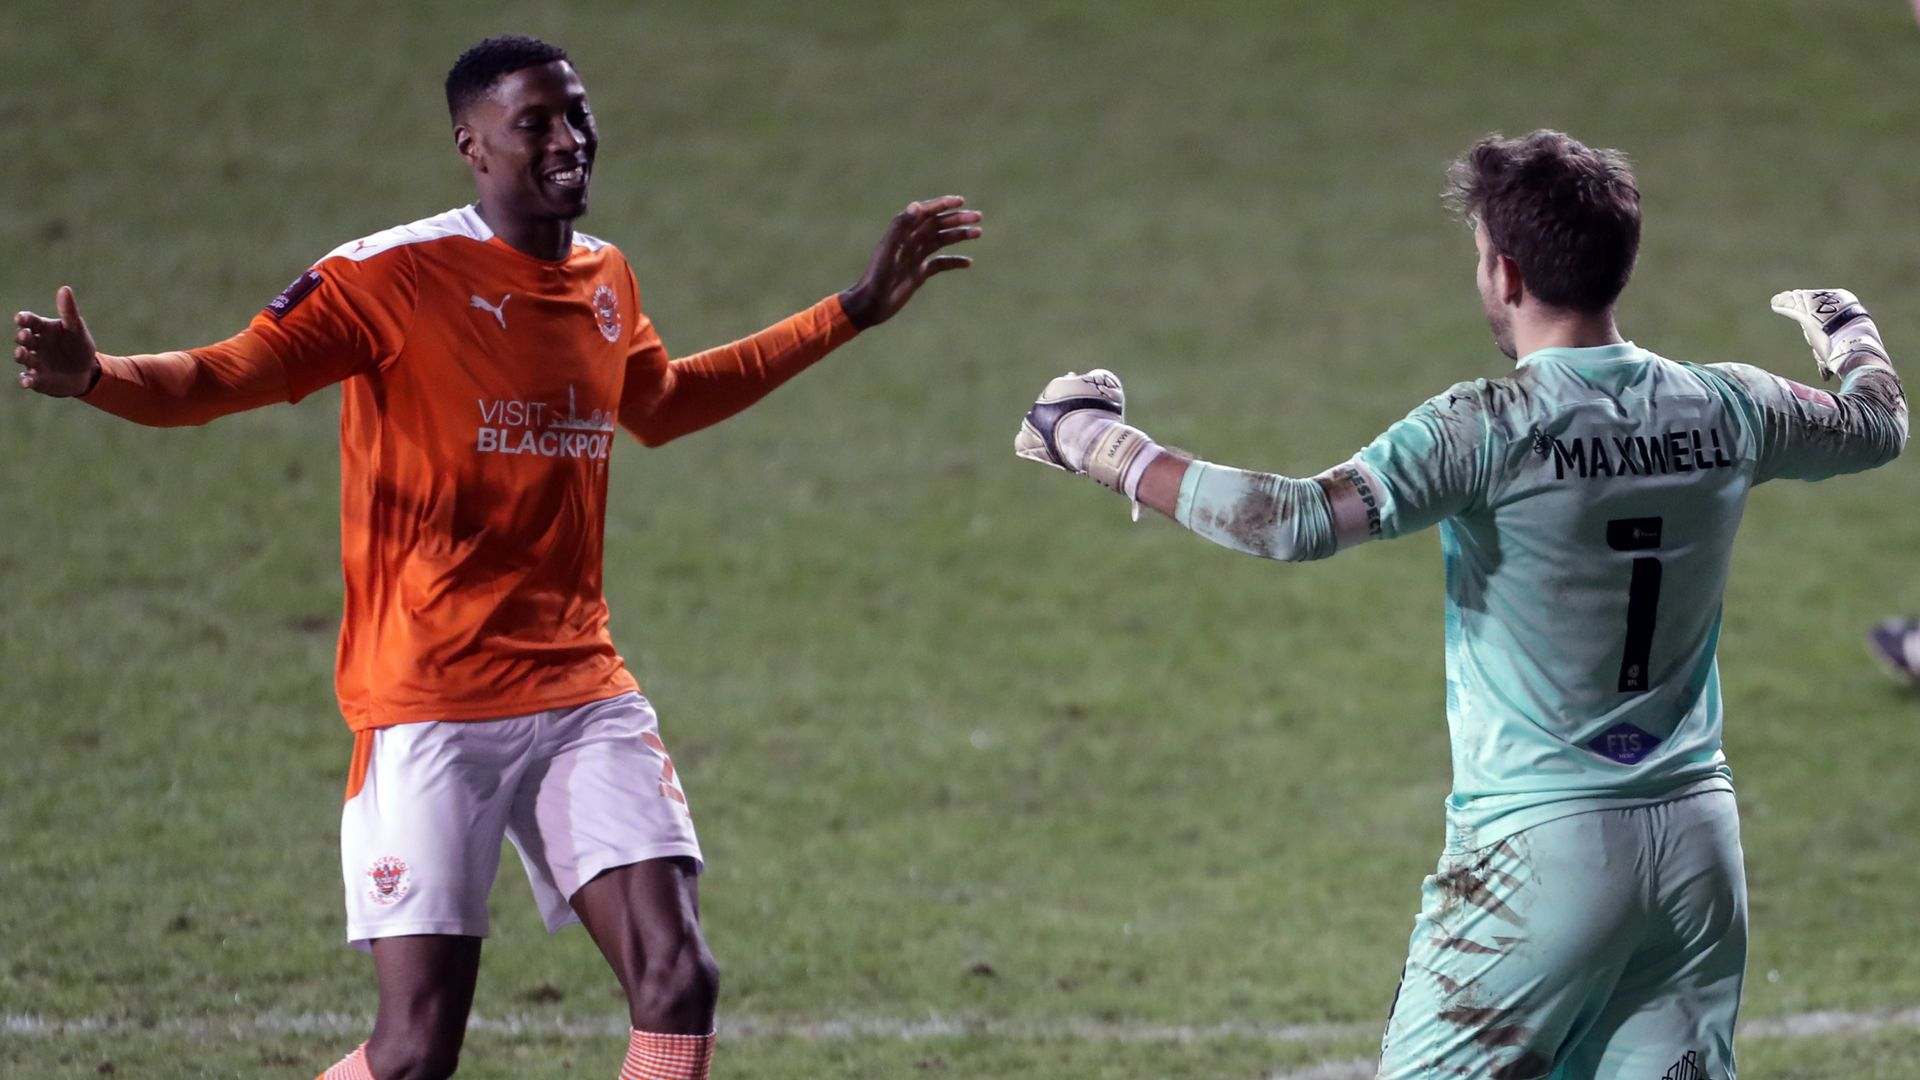 Blackpool knock Baggies out of cup on pens